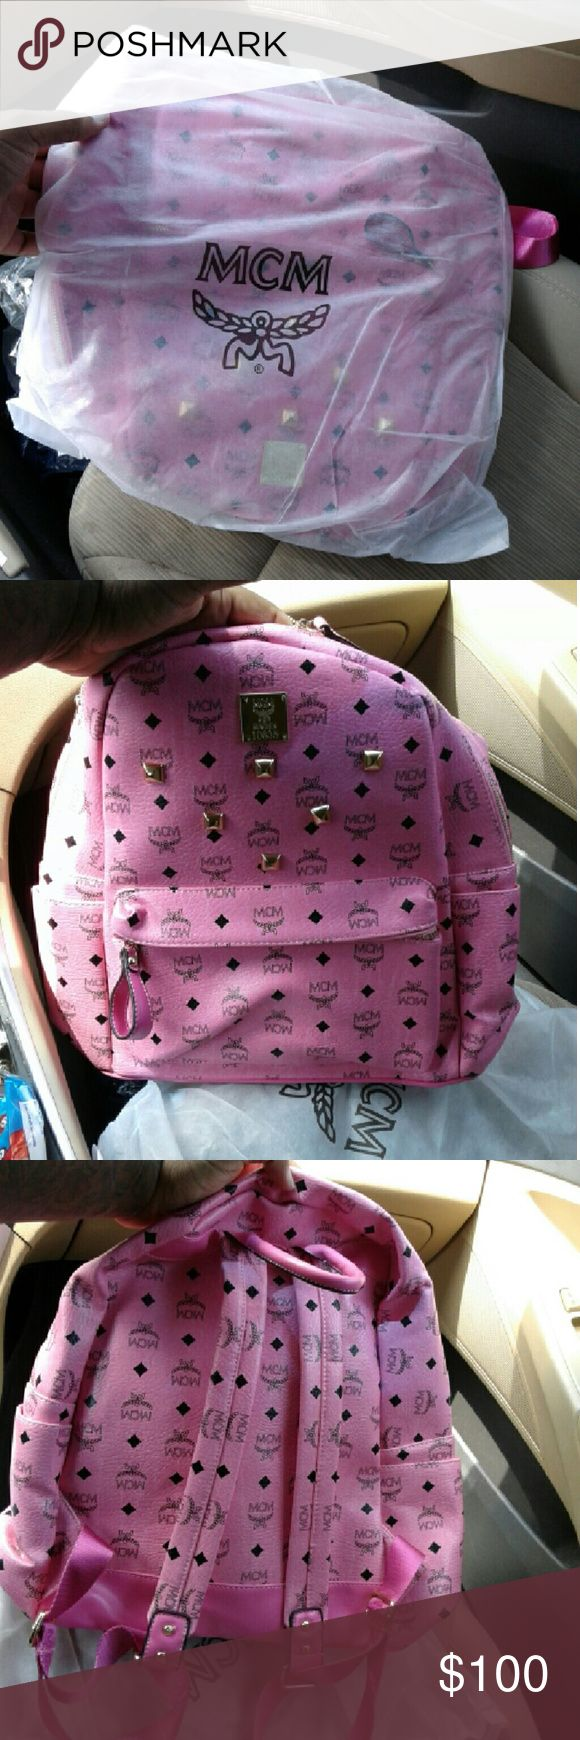 Pink MCM Backpack Here you have is a brand new mcm backpack!! Brand new!!! Never been worn!!! Hurry up and buy!!! MCM Bags Backpacks